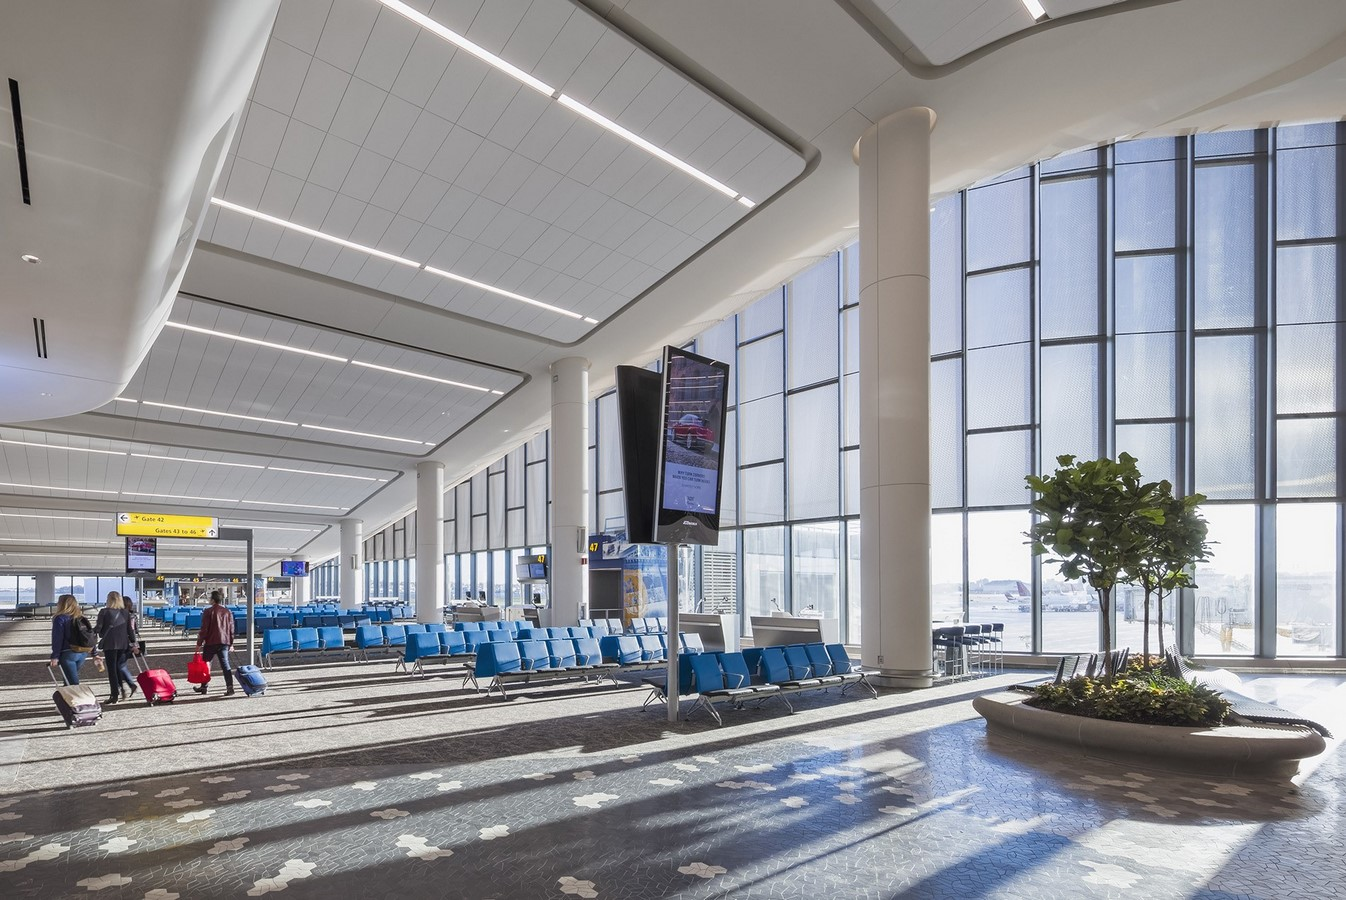 LaGuardia Airport by HOK: Advanced for it's time yet criticized - Sheet11